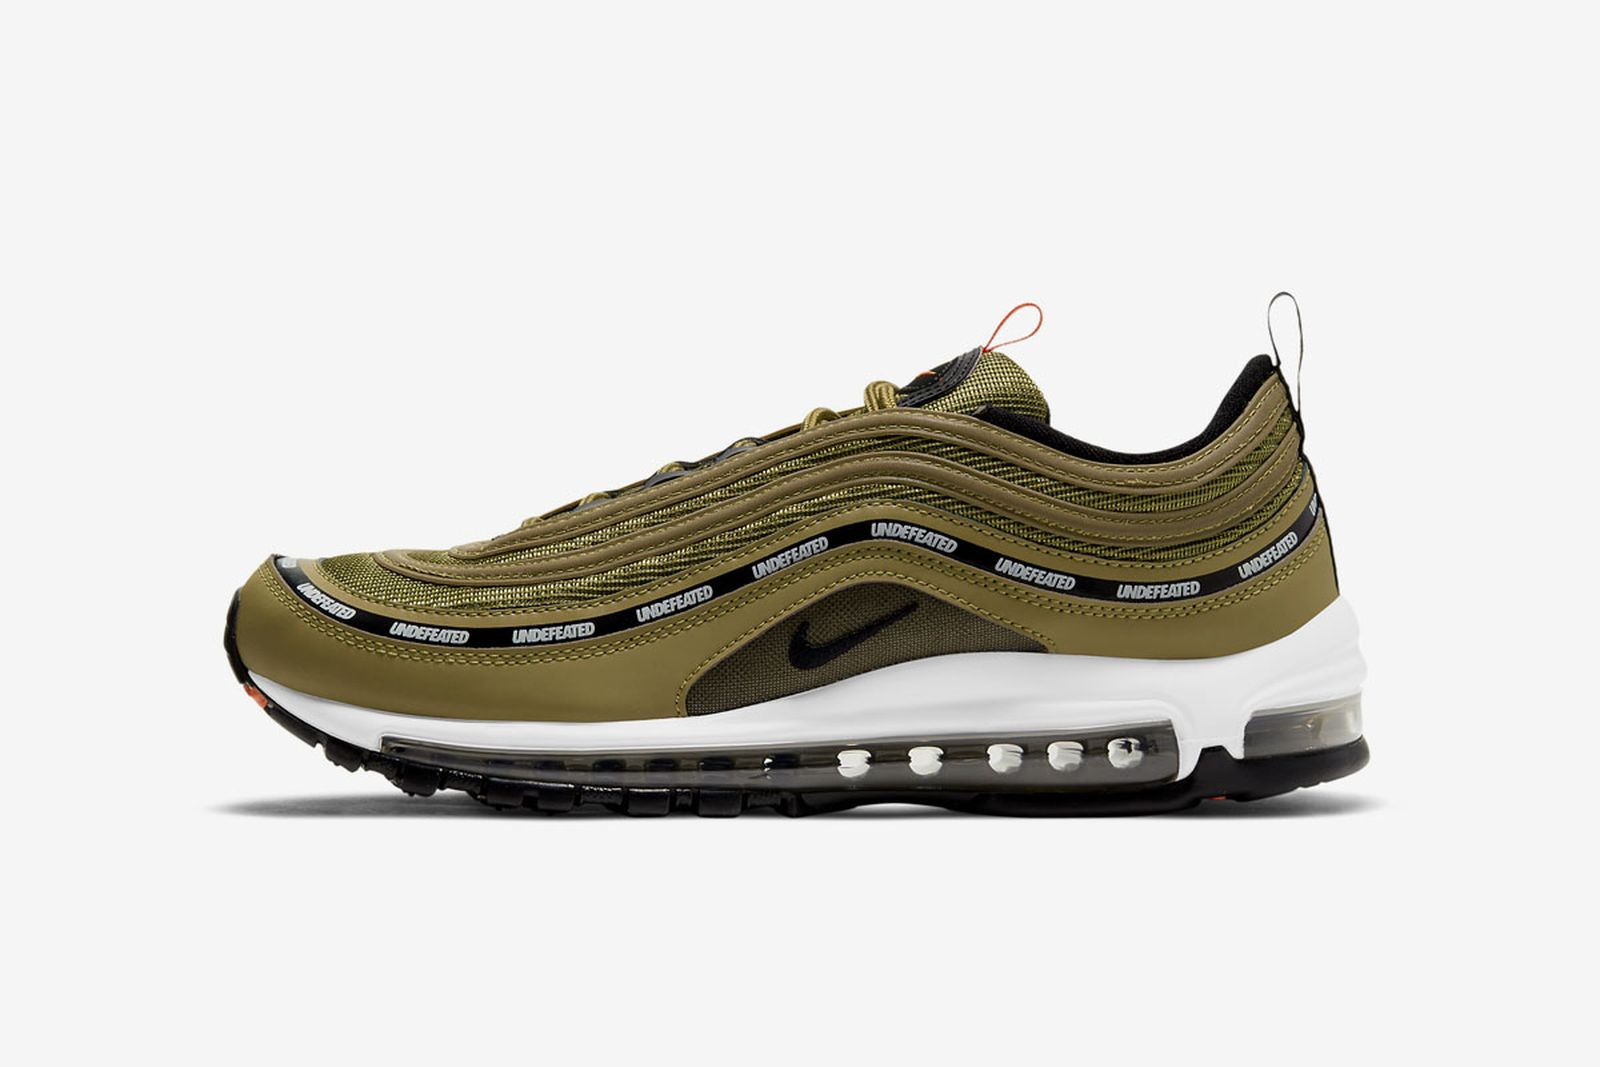 undefeated-nike-air-max-97-release-date-price-01